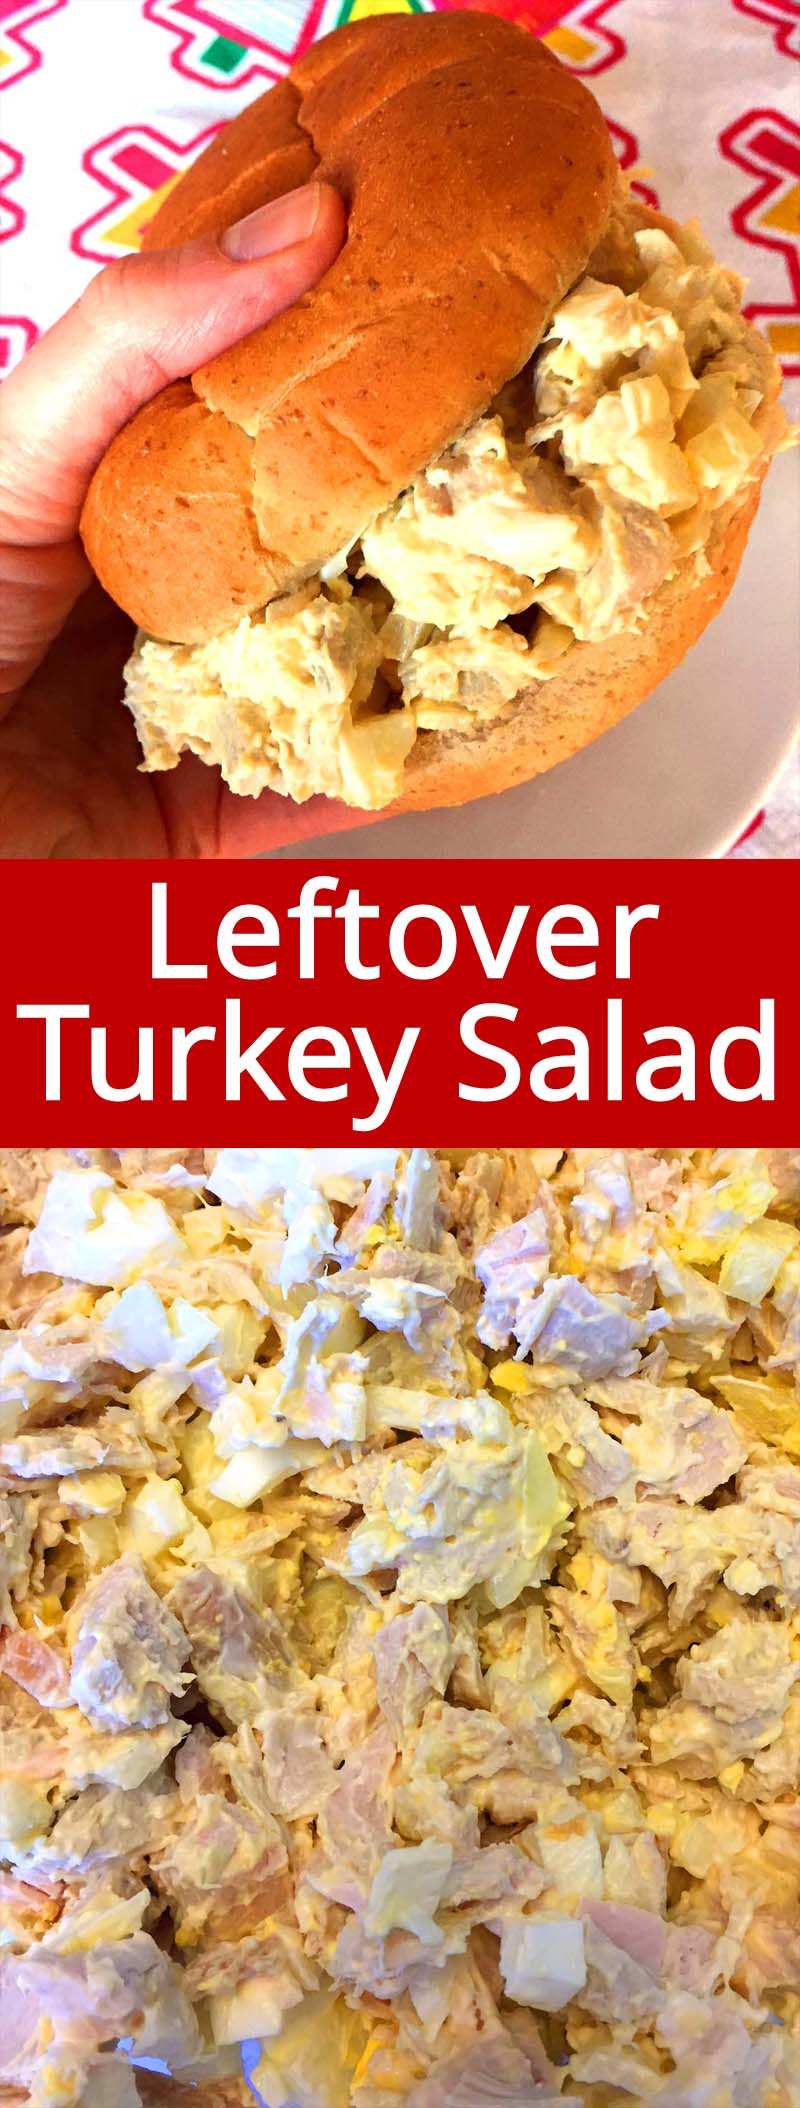 This turkey salad recipe is my favorite way to use up leftover turkey! Chopped turkey, onion, egg and creamy mayo - yum! Put this turkey salad on a bun to make a sandwich, or just eat it straight out of the bowl!